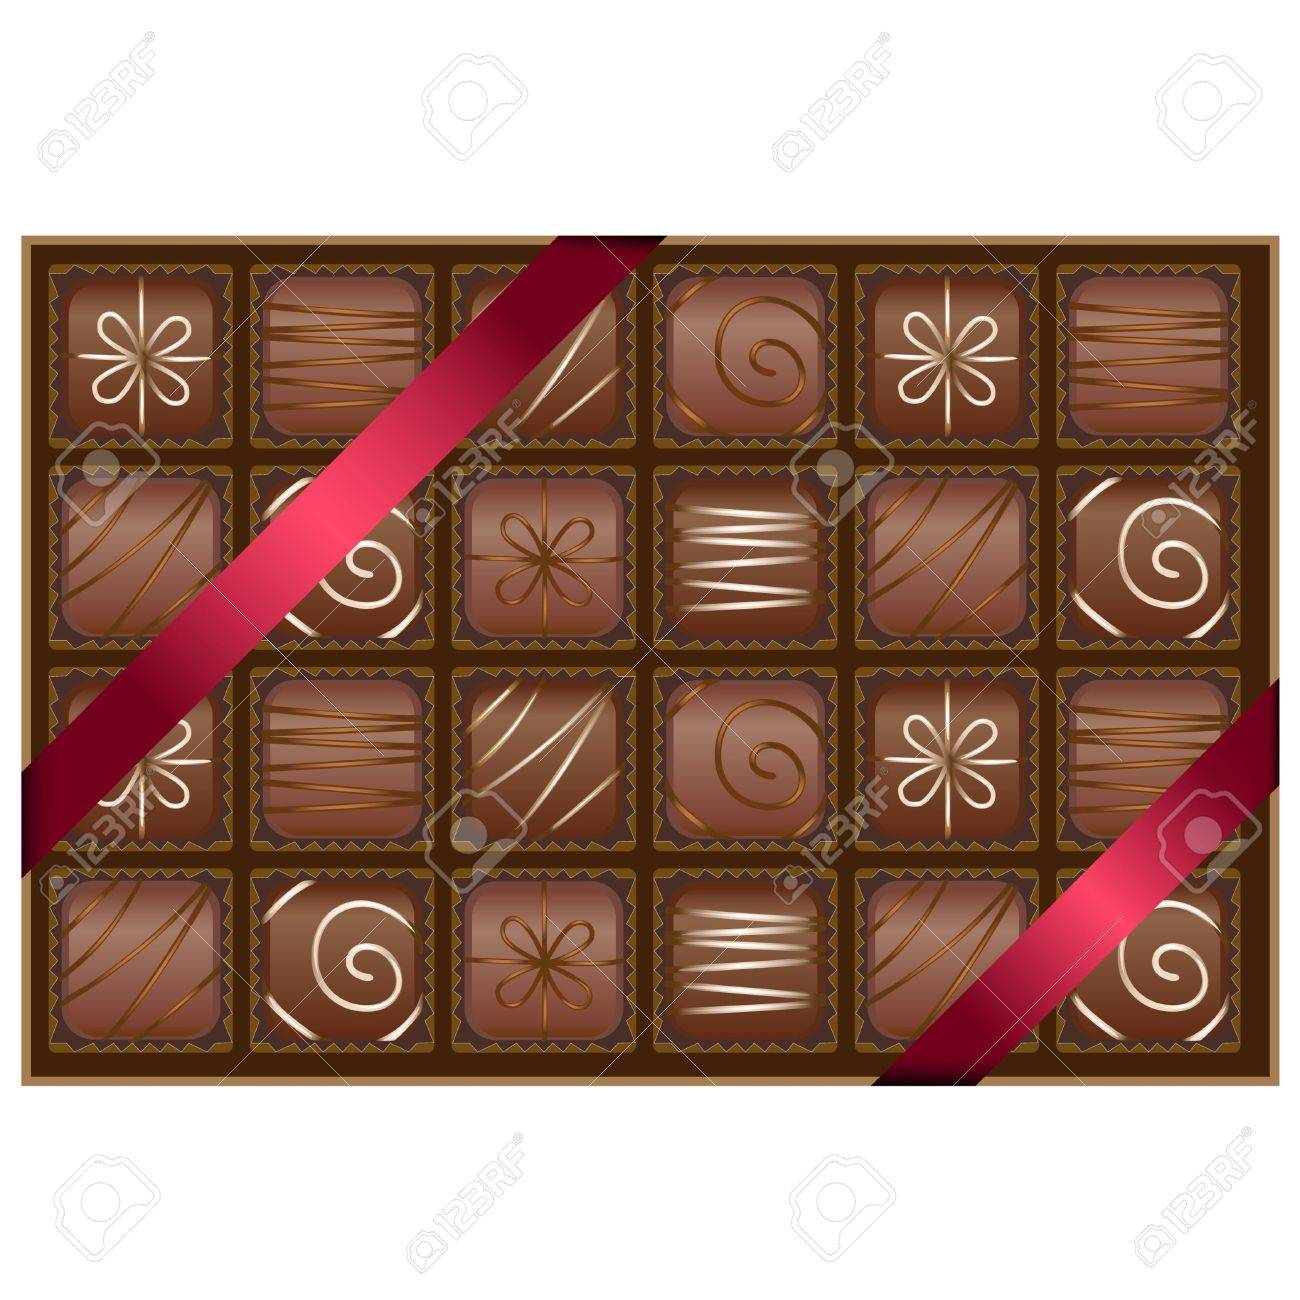 Box Of Chocolates Royalty Free Cliparts, Vectors, And Stock ...